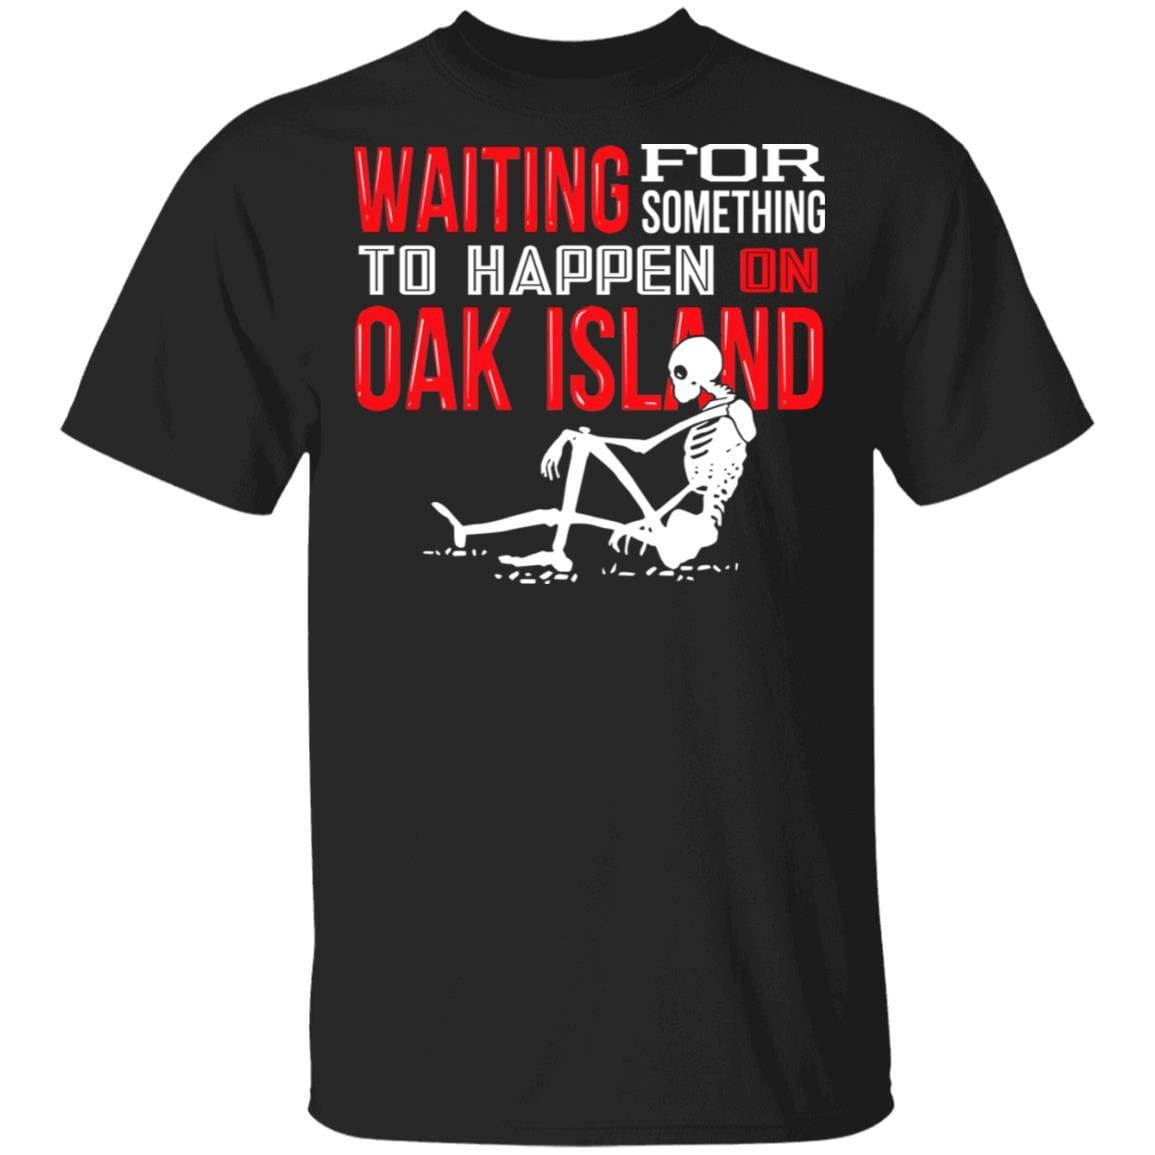 Waiting For Something To Happen On Oak Island T-Shirts, Hoodies 1049-9953-91587324-48144 - Tee Ript